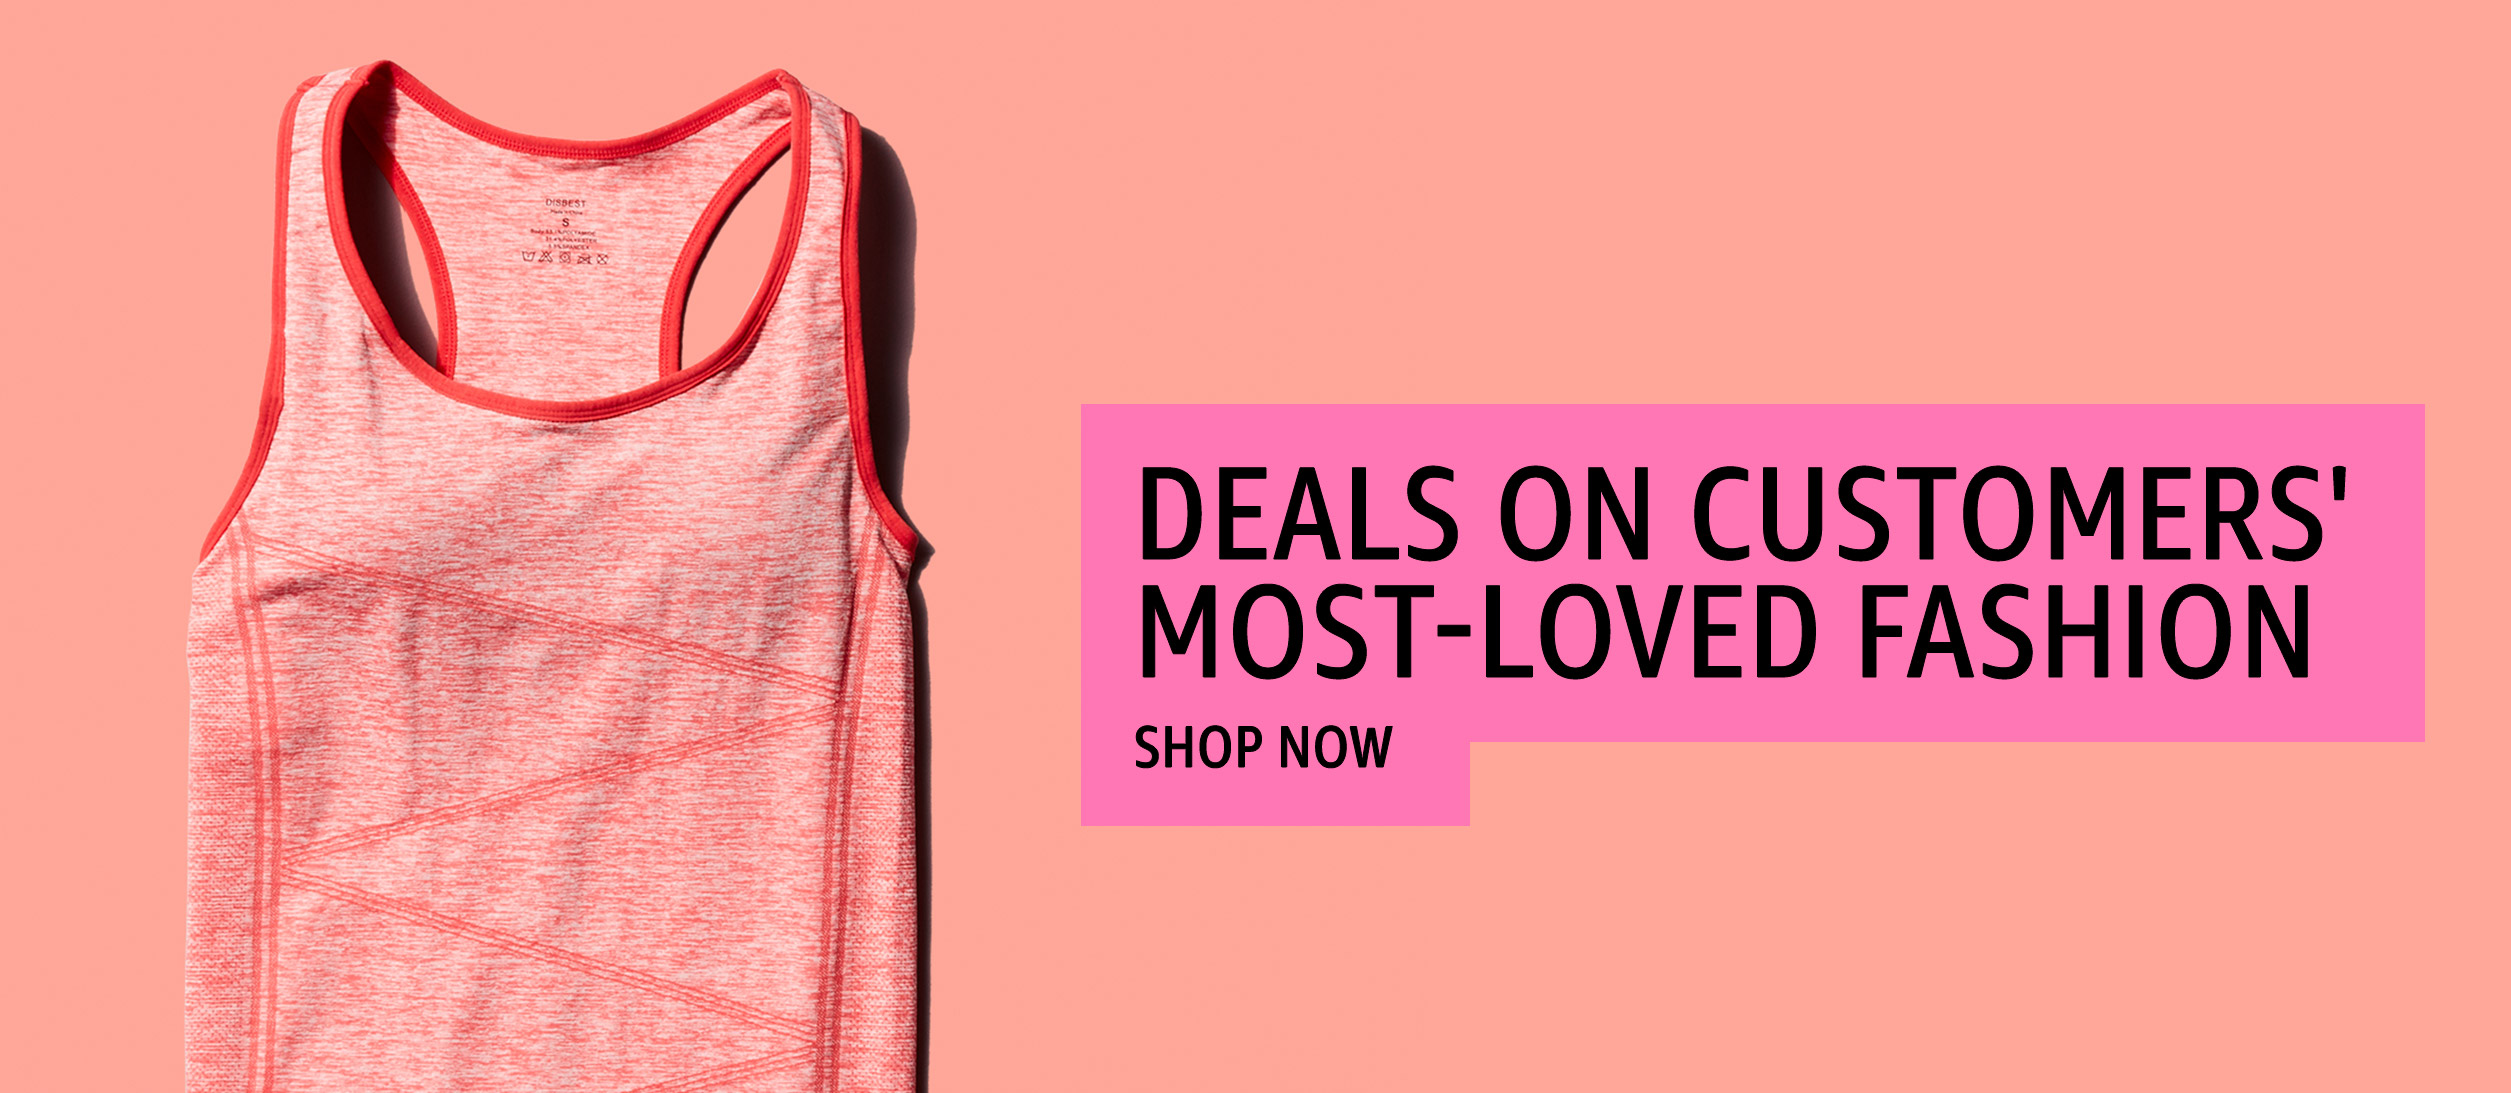 Deals on Customers' Most-Loved Fashion